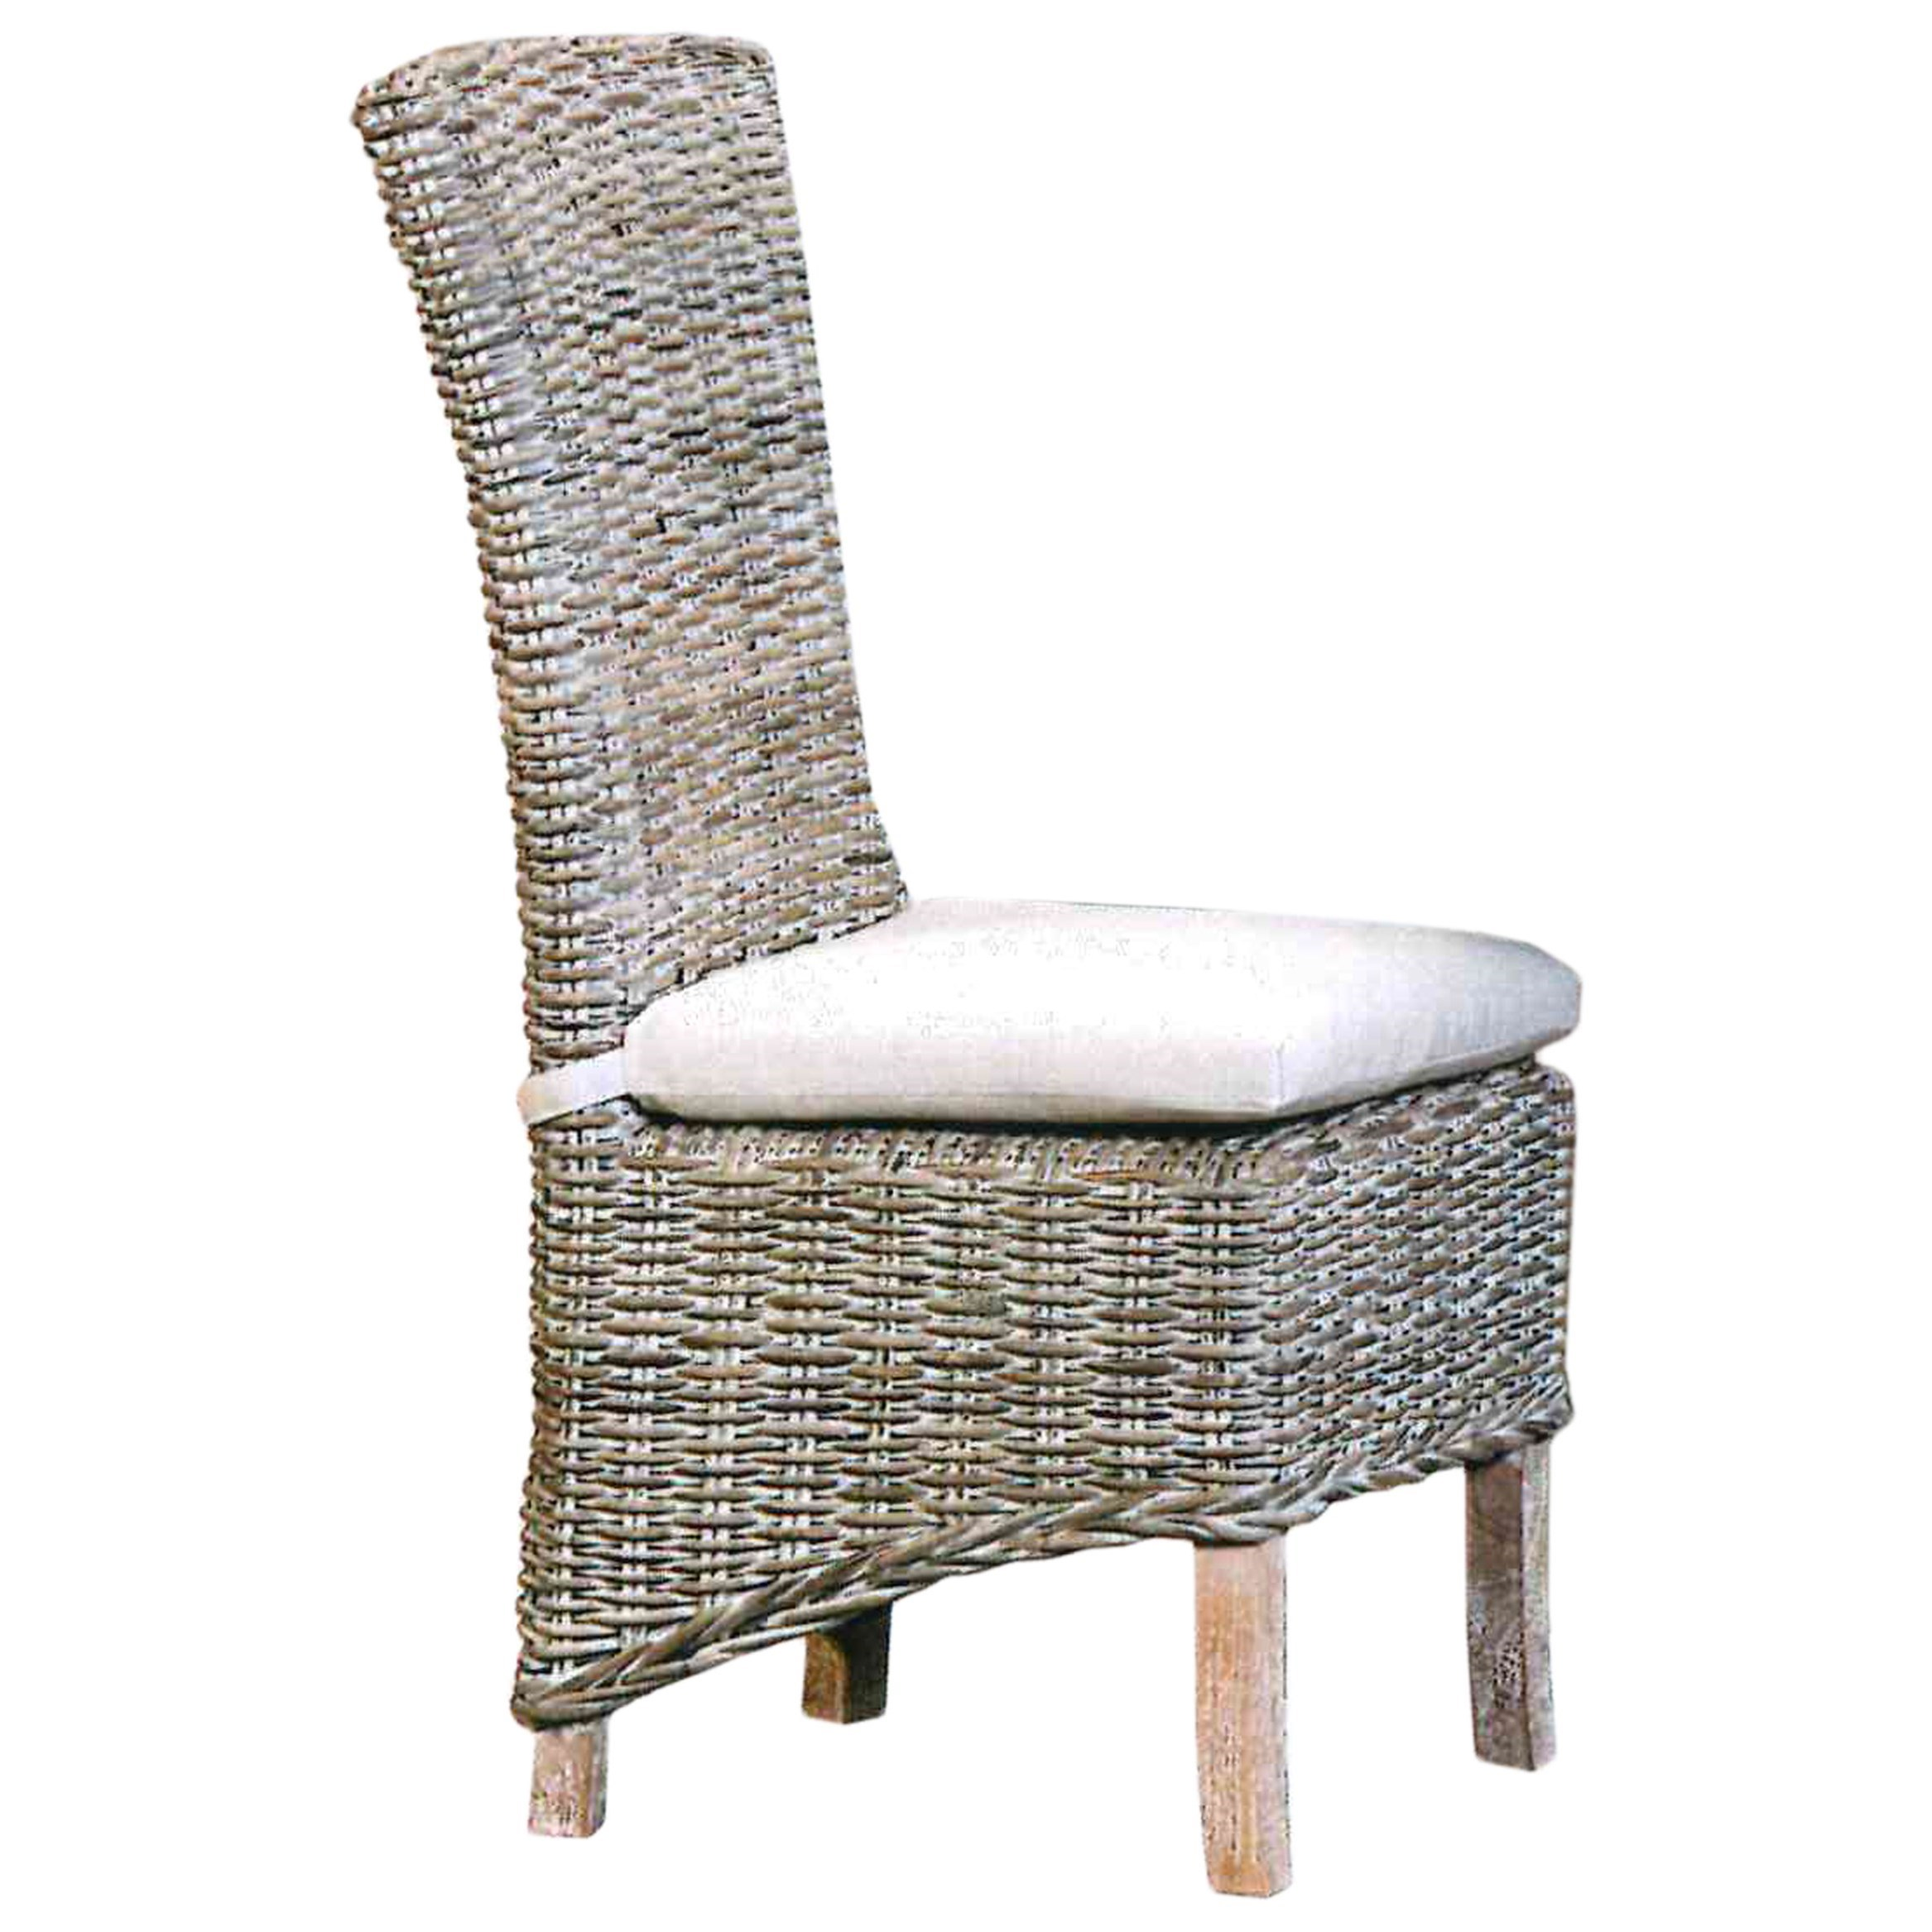 ikea casual chairs paris bistro outdoor capris furniture and ottomans weathered gray wicker